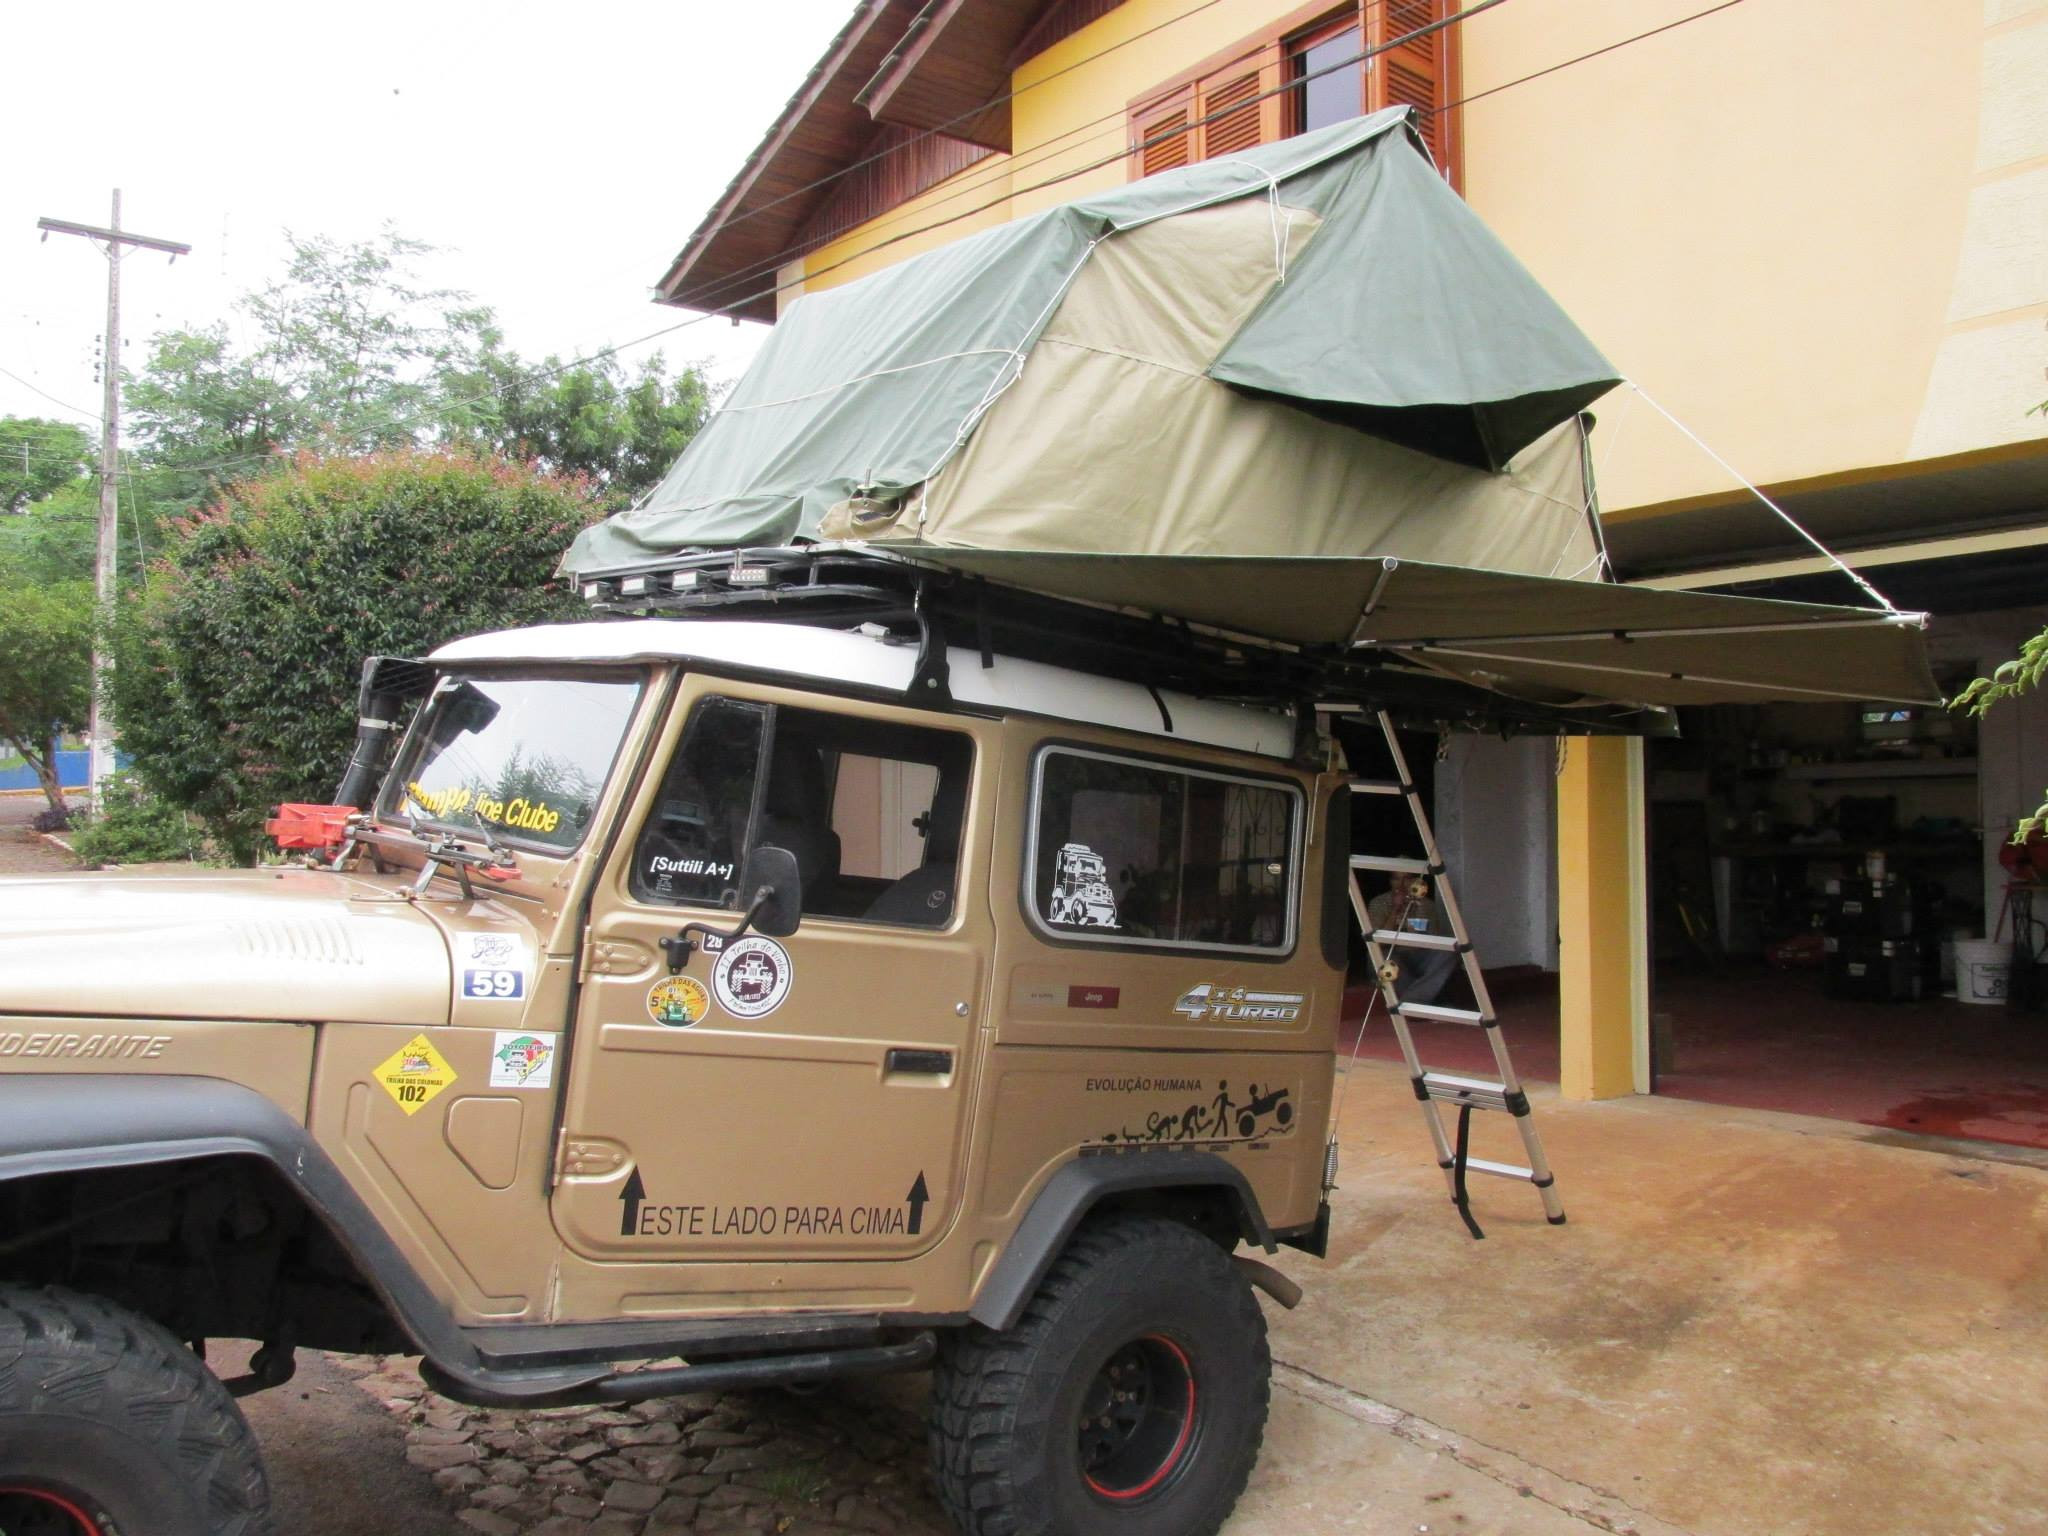 Best ideas about DIY Roof Top Tents . Save or Pin DIY Roof top tent and folding sun rain shade awn project Now.